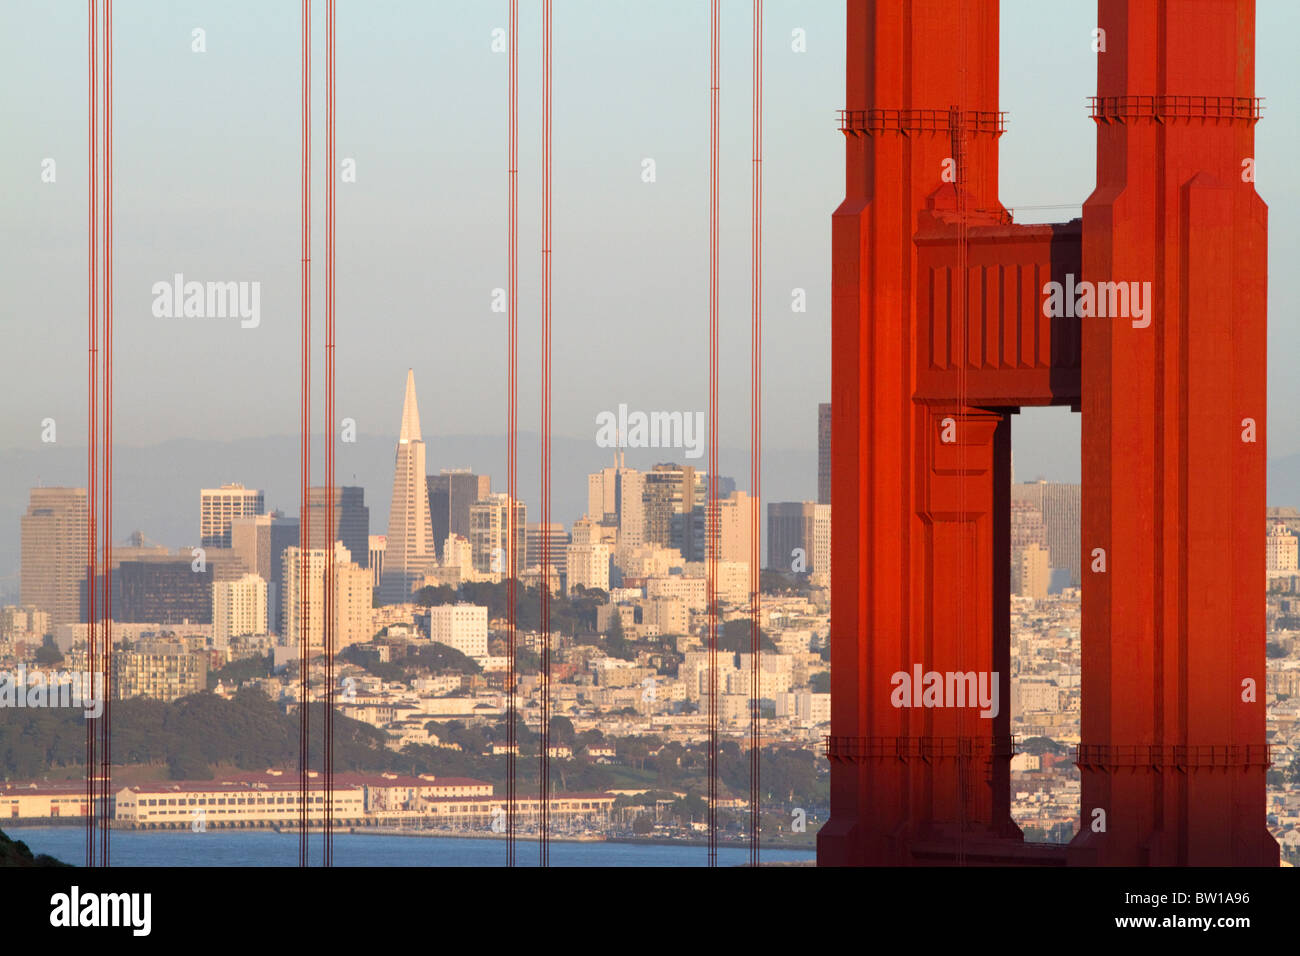 Die Golden Gate Bridge und die Stadt San Francisco, Kalifornien, USA. Stockbild